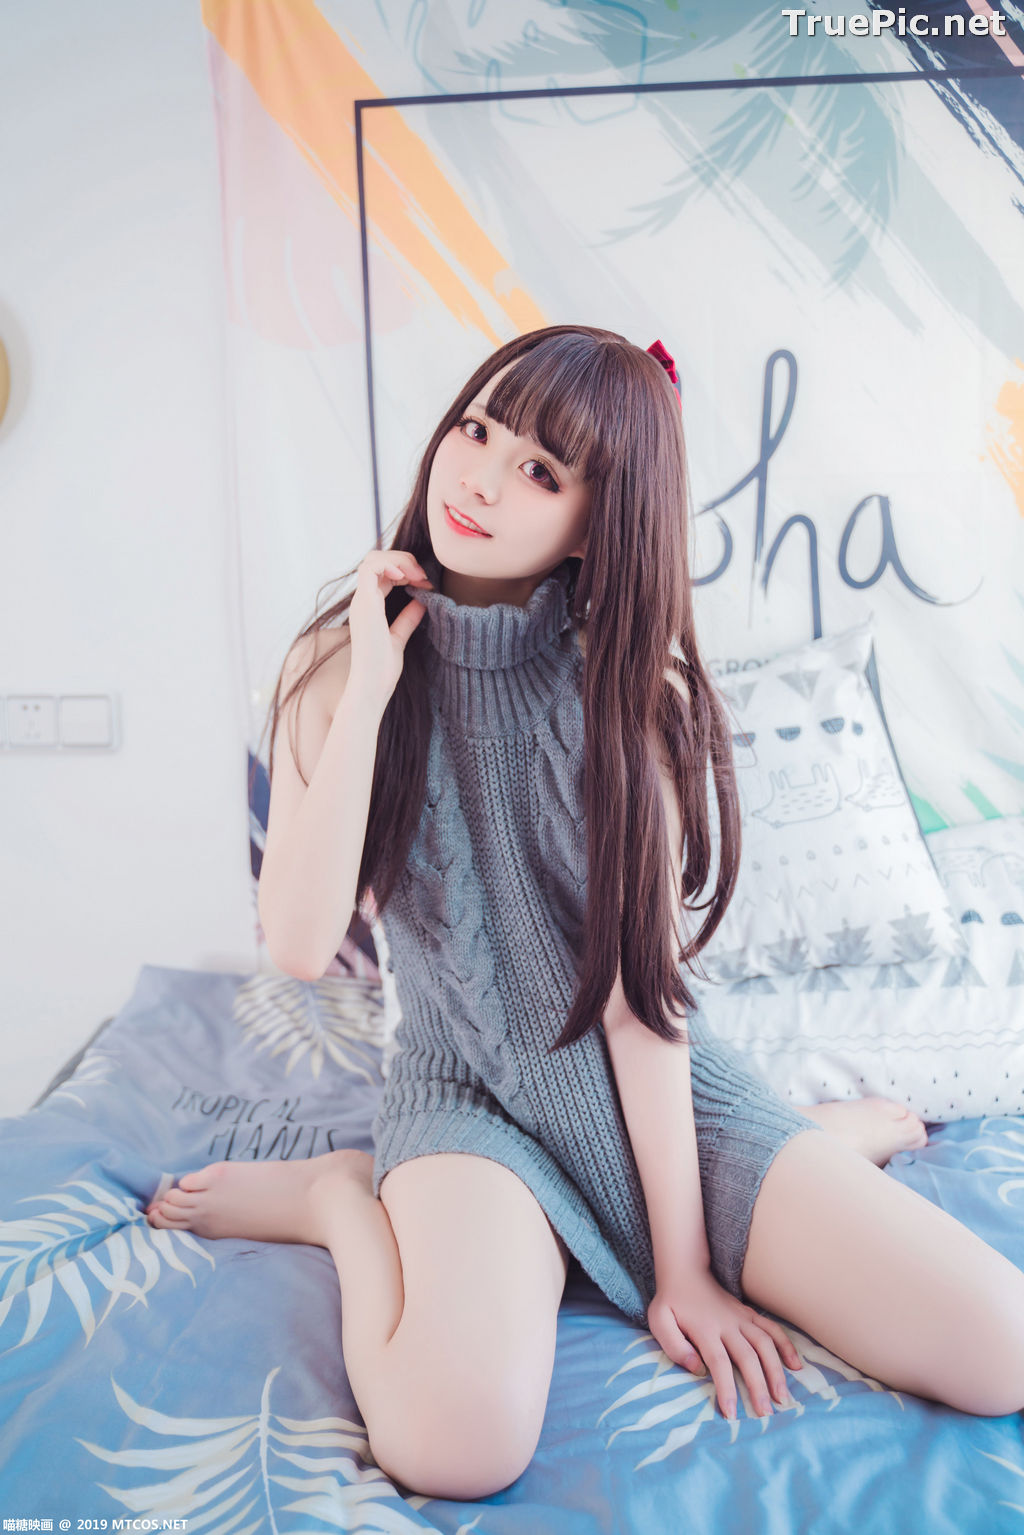 Image [MTCos] 喵糖映画 Vol.030 – Chinese Cute Model – Open Back Sweater - TruePic.net - Picture-28